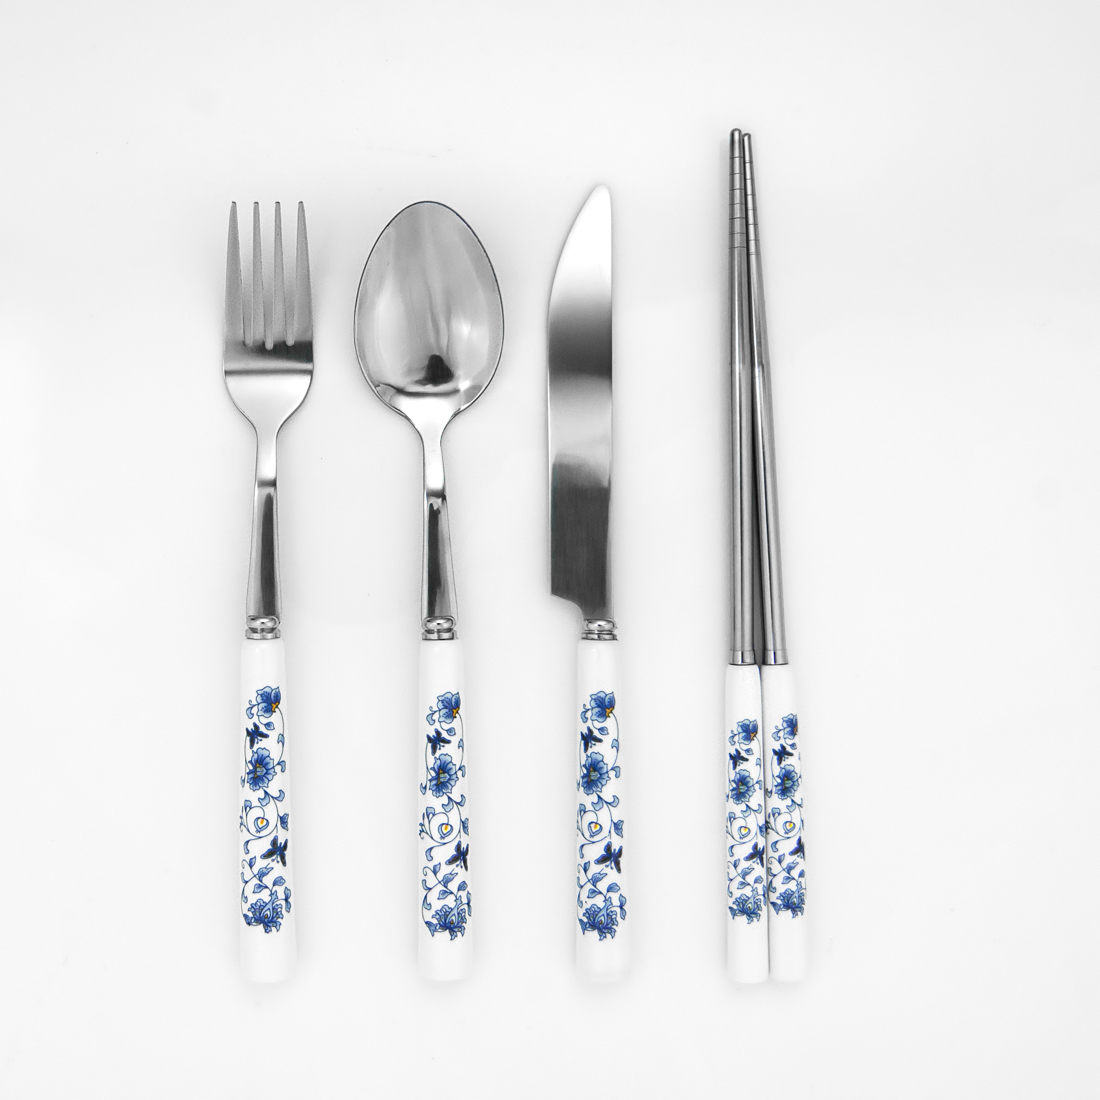 Blue Floral Silverware Set with Chopsticks by